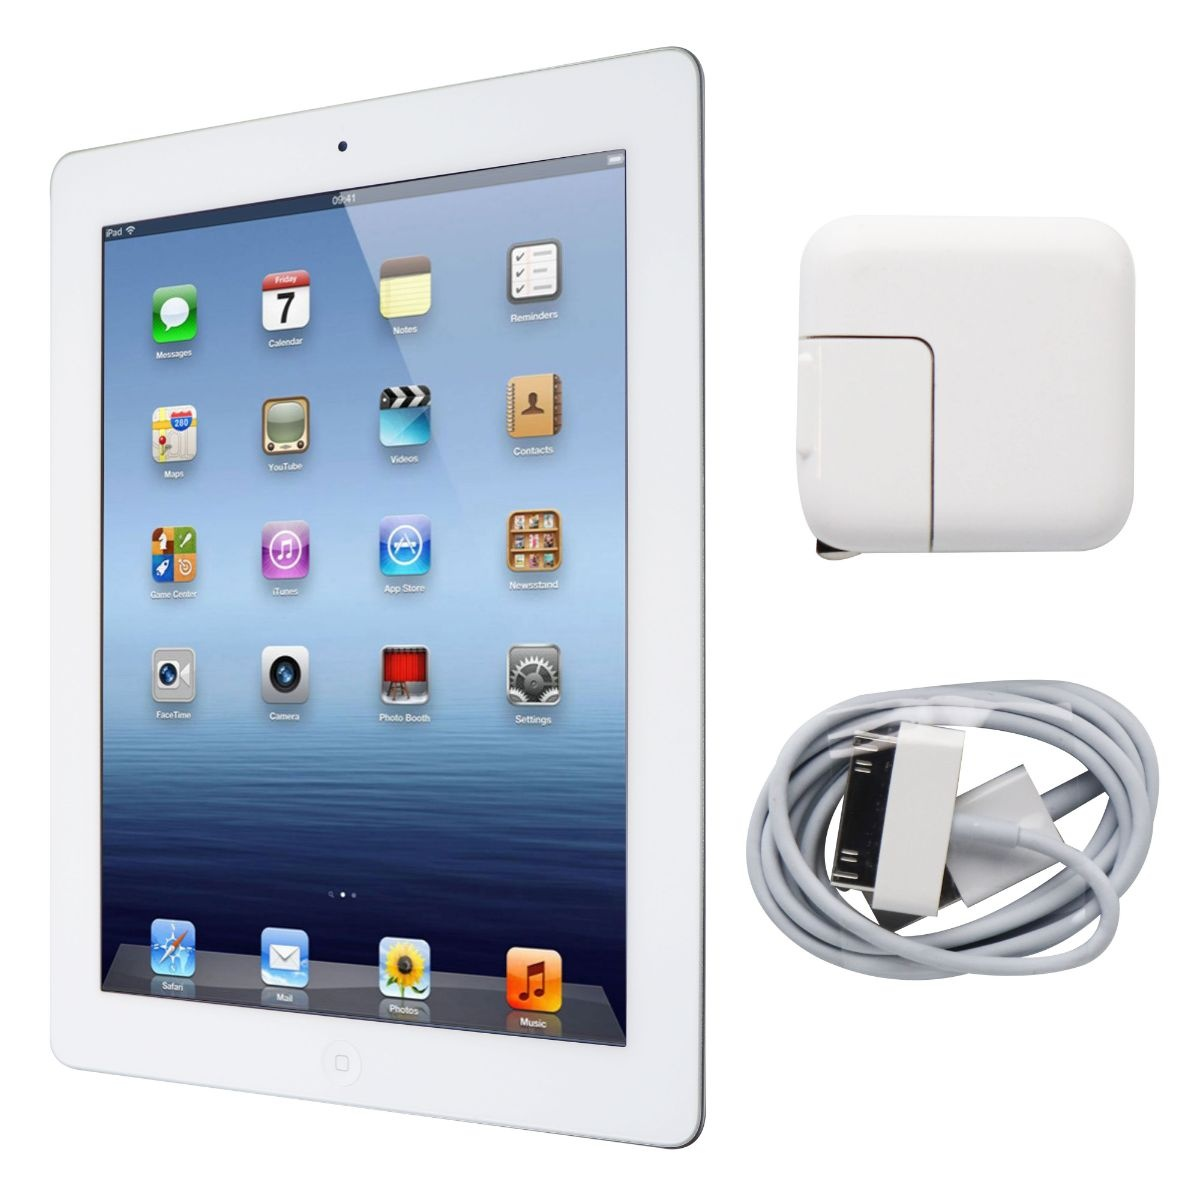 Apple iPad 9.7 (2nd Gen) Tablet A1395 MC980LL/A (Wi-Fi ONLY) - 32GB / White